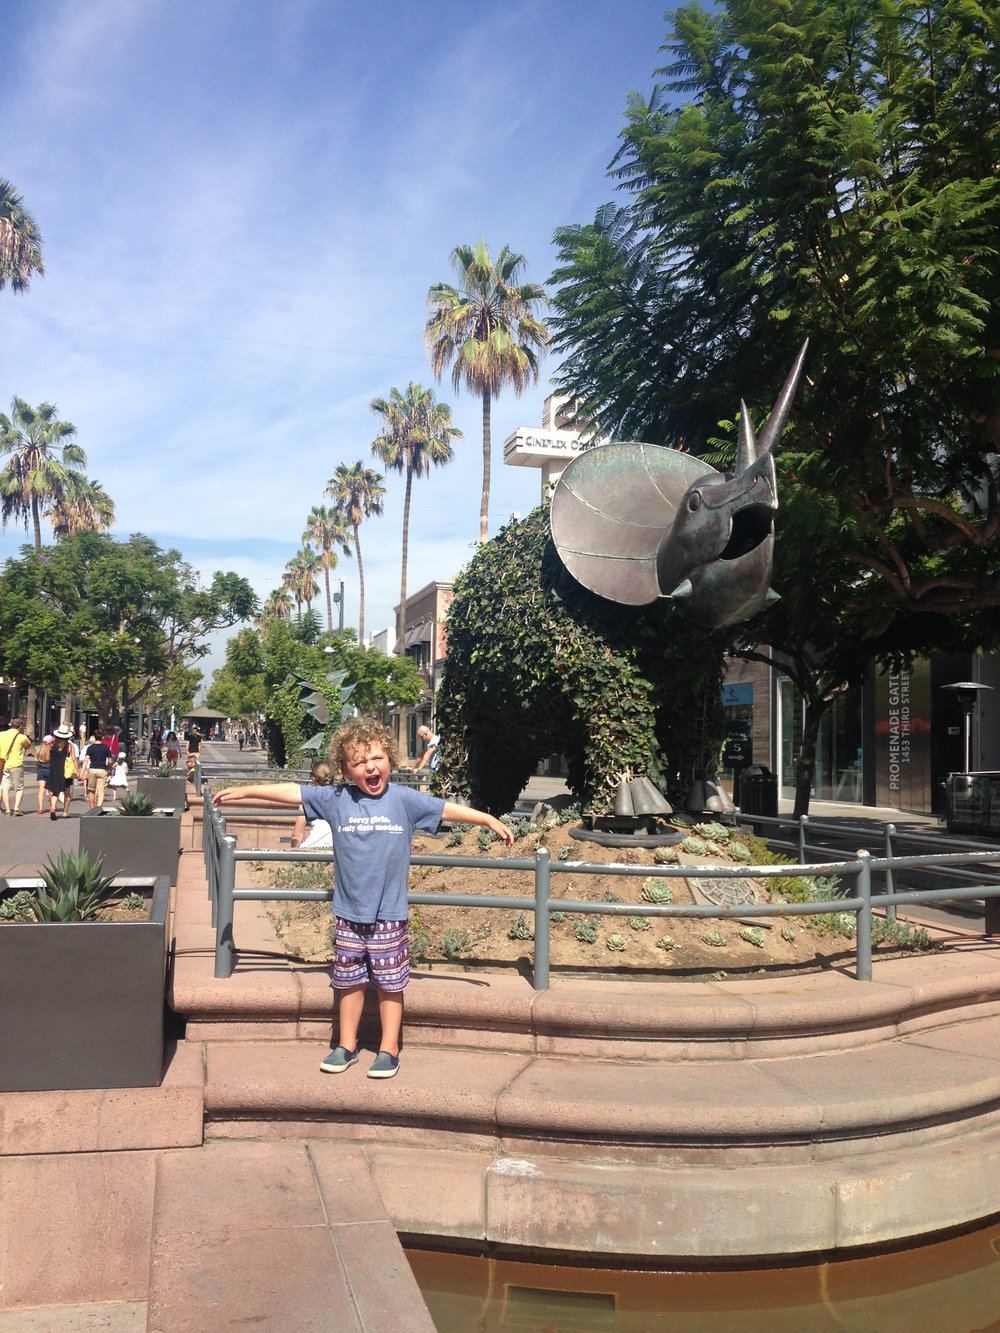 Roaring with the dinosaurs on Third Street Promenade!